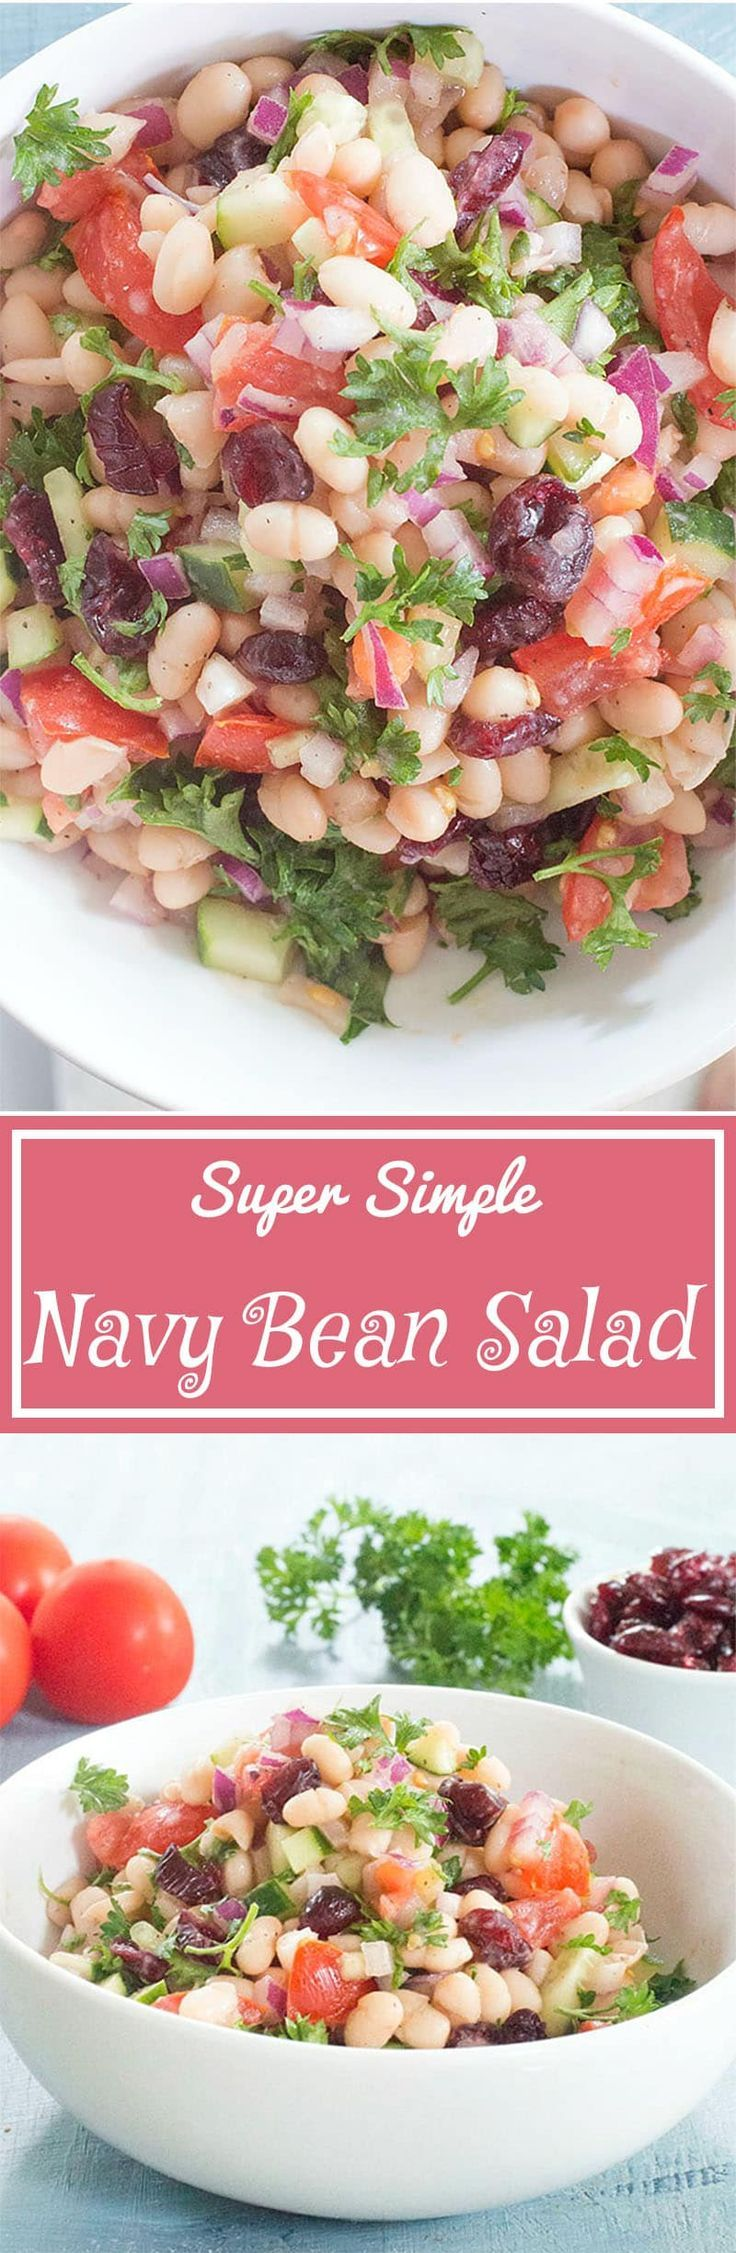 Navy Beans Salad is very healthy, quick dinner idea that can be enjoyed as a side dish or main. | vegan, vegetarian & gluten free